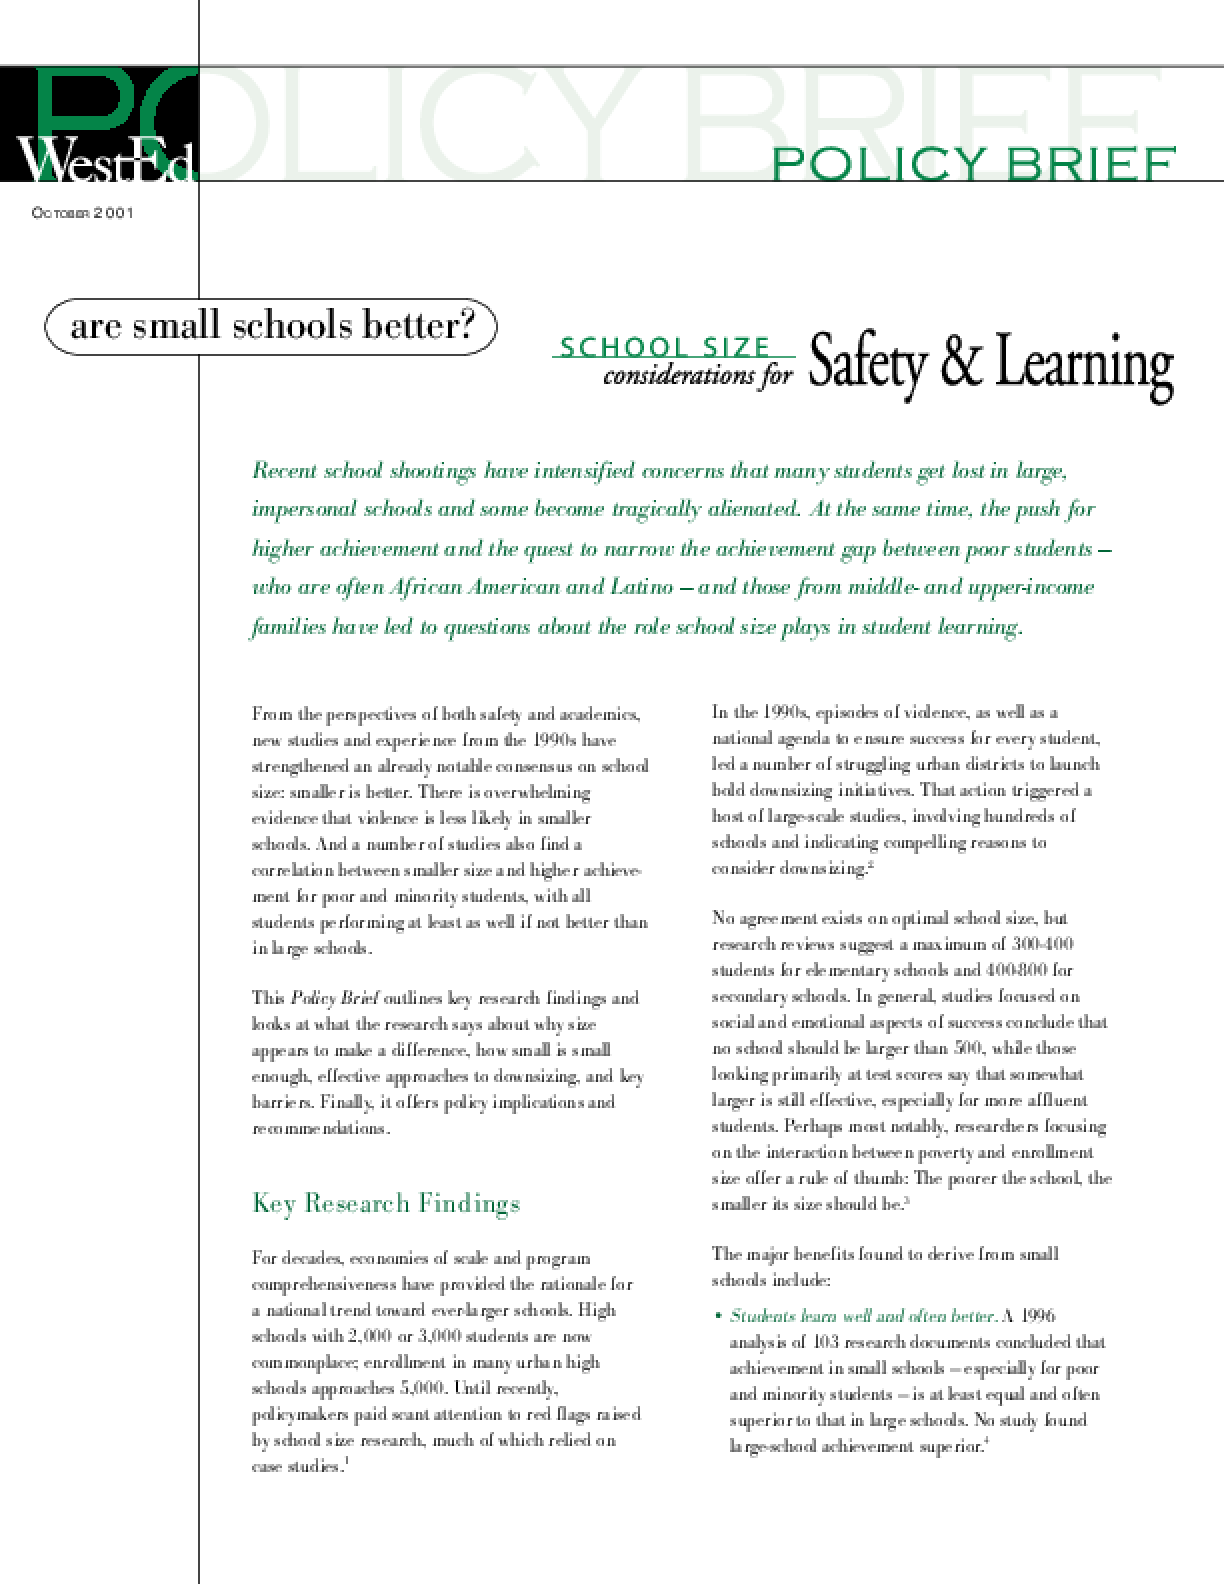 Are Small Schools Better? School Size Considerations for Safety and Learning